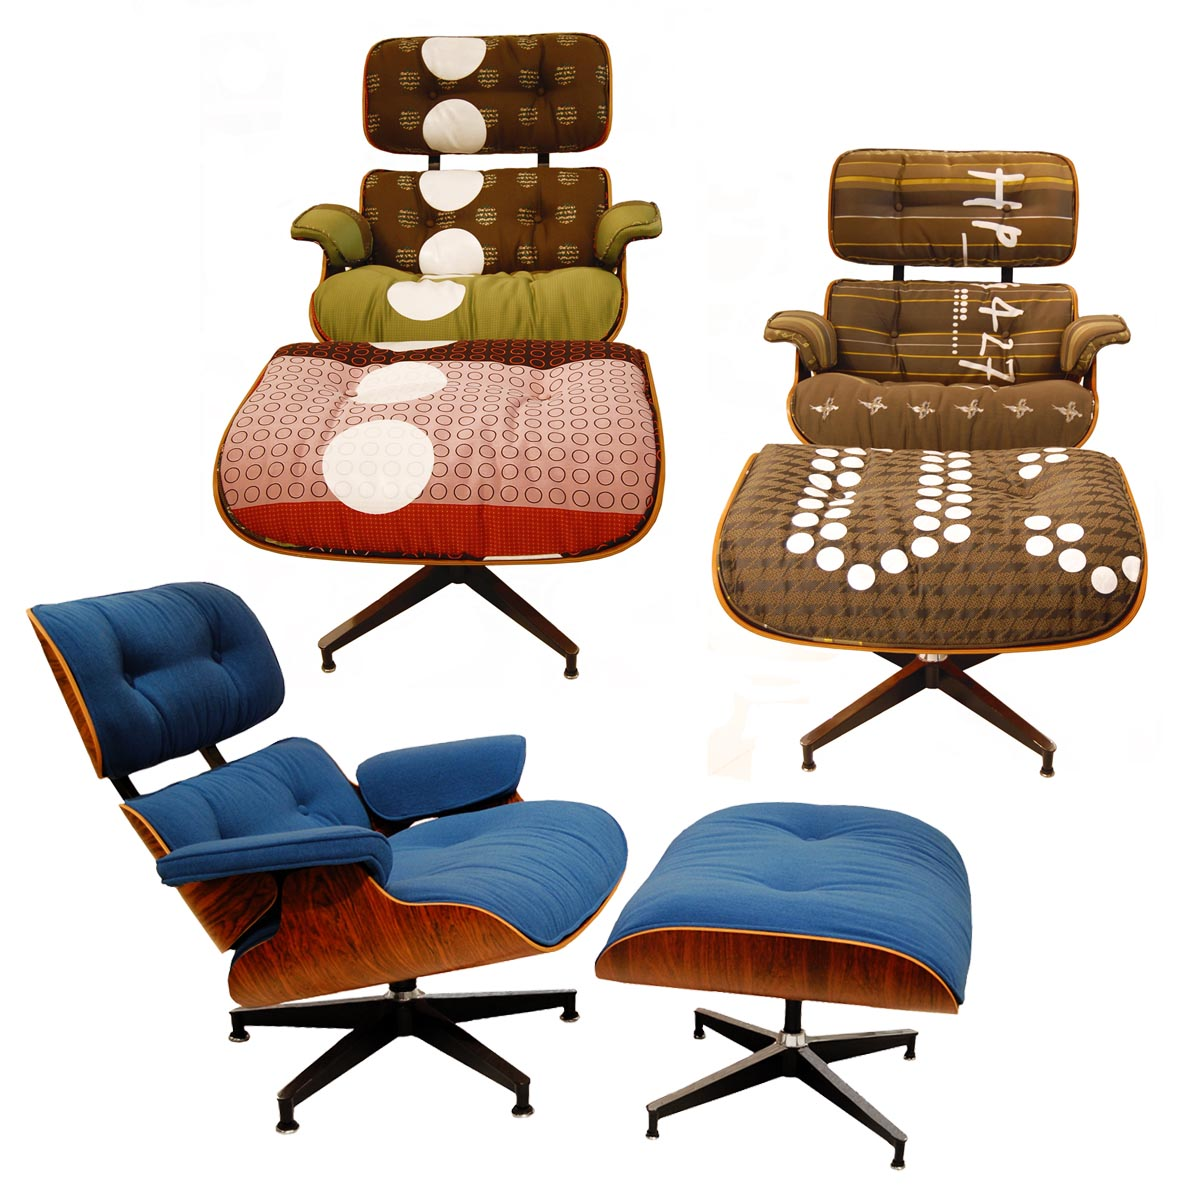 ottoman lounge chair products wwb modern source the eames reproduction